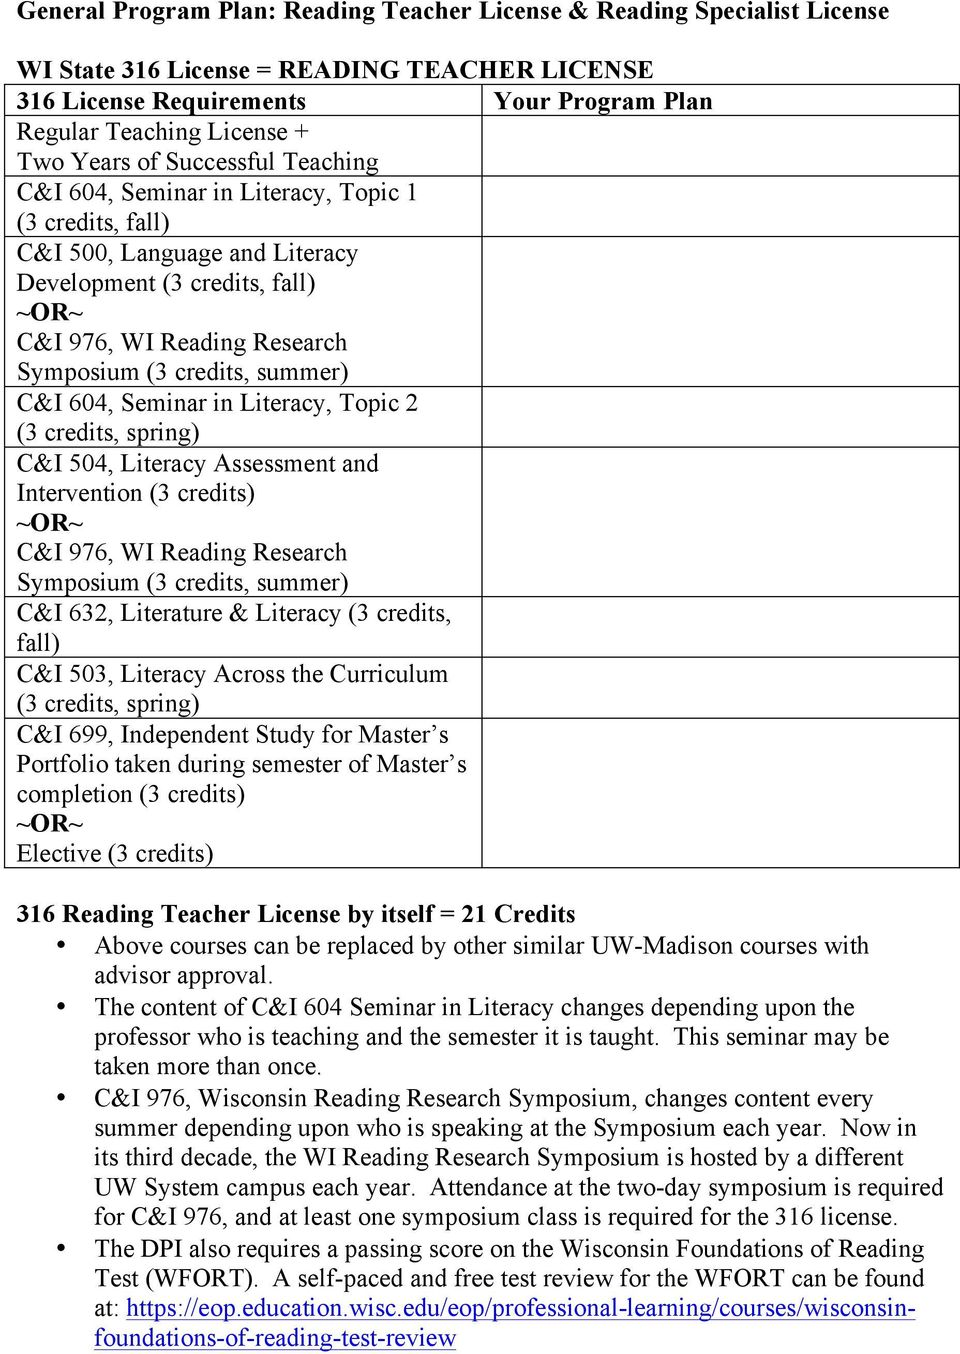 spring) C&I 504, Literacy Assessment and Intervention (3 credits) C&I 632, Literature & Literacy (3 credits, fall) C&I 503, Literacy Across the Curriculum (3 credits, spring) C&I 699, Independent